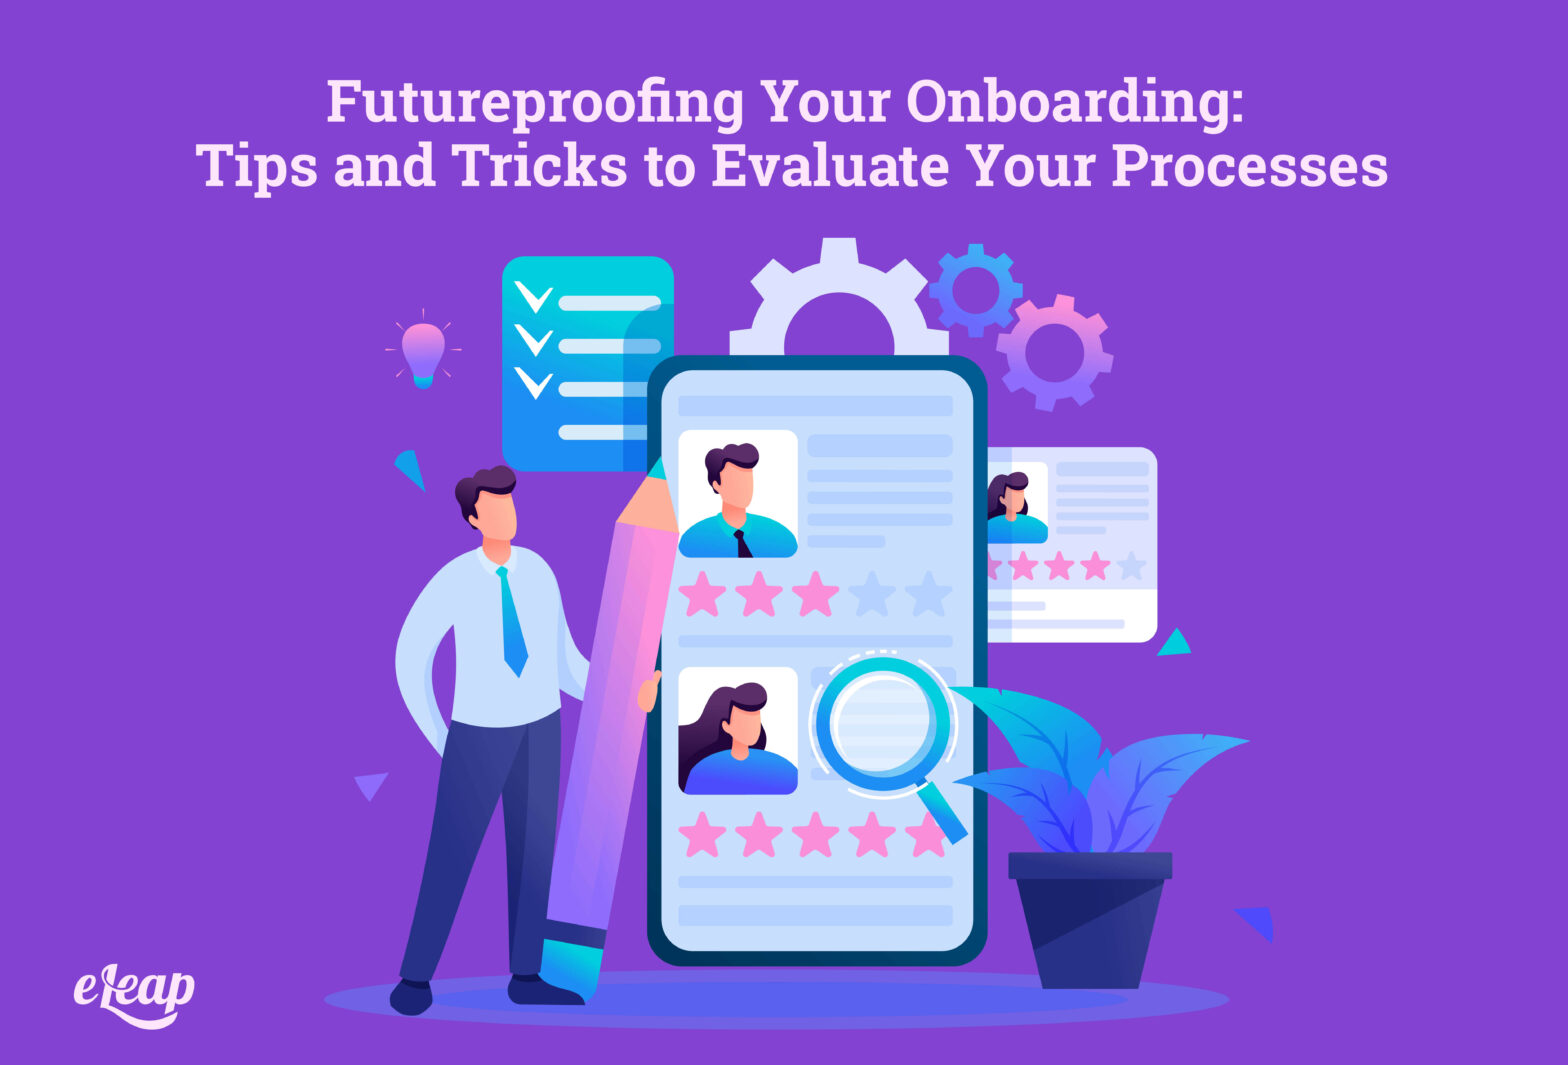 Futureproofing Your Onboarding: Tips and Tricks to Evaluate Your Processes